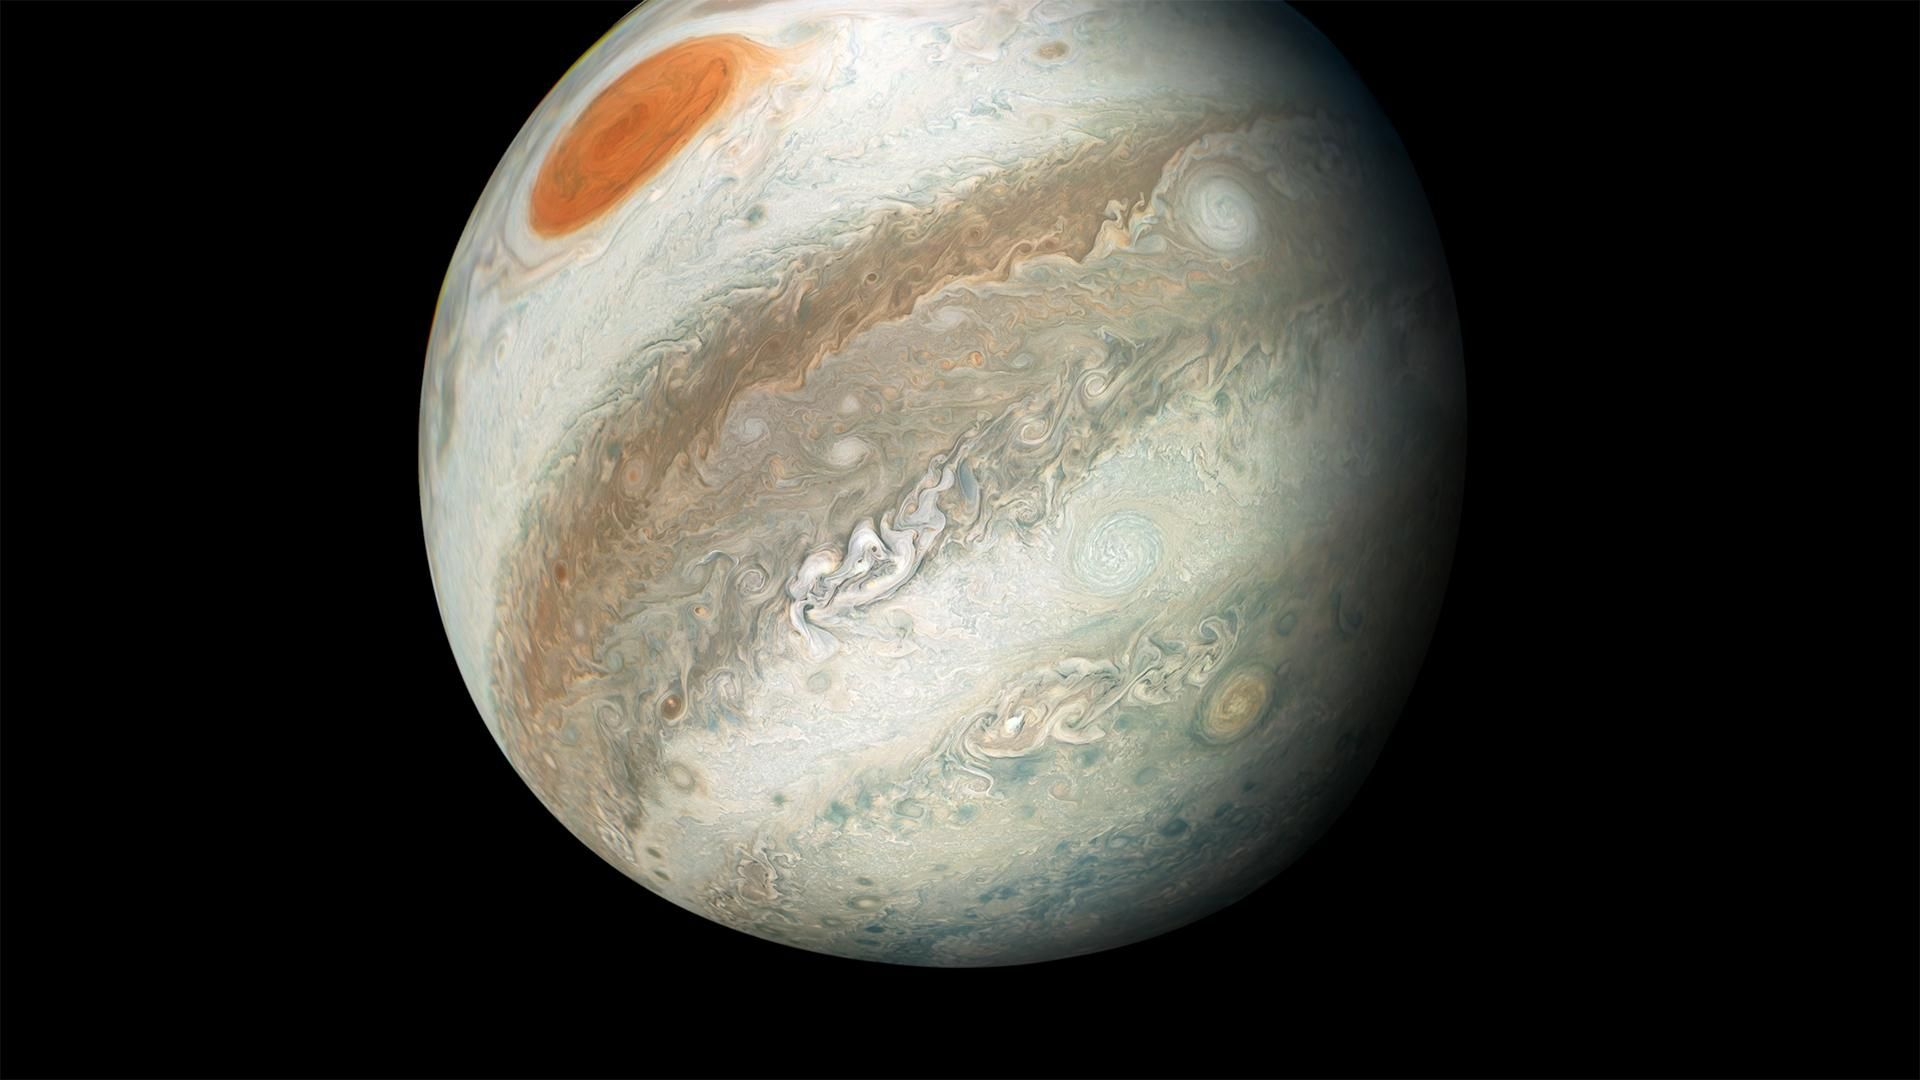 Real Pictures Of Jupiter The Planet NASA: New Juno Image S...